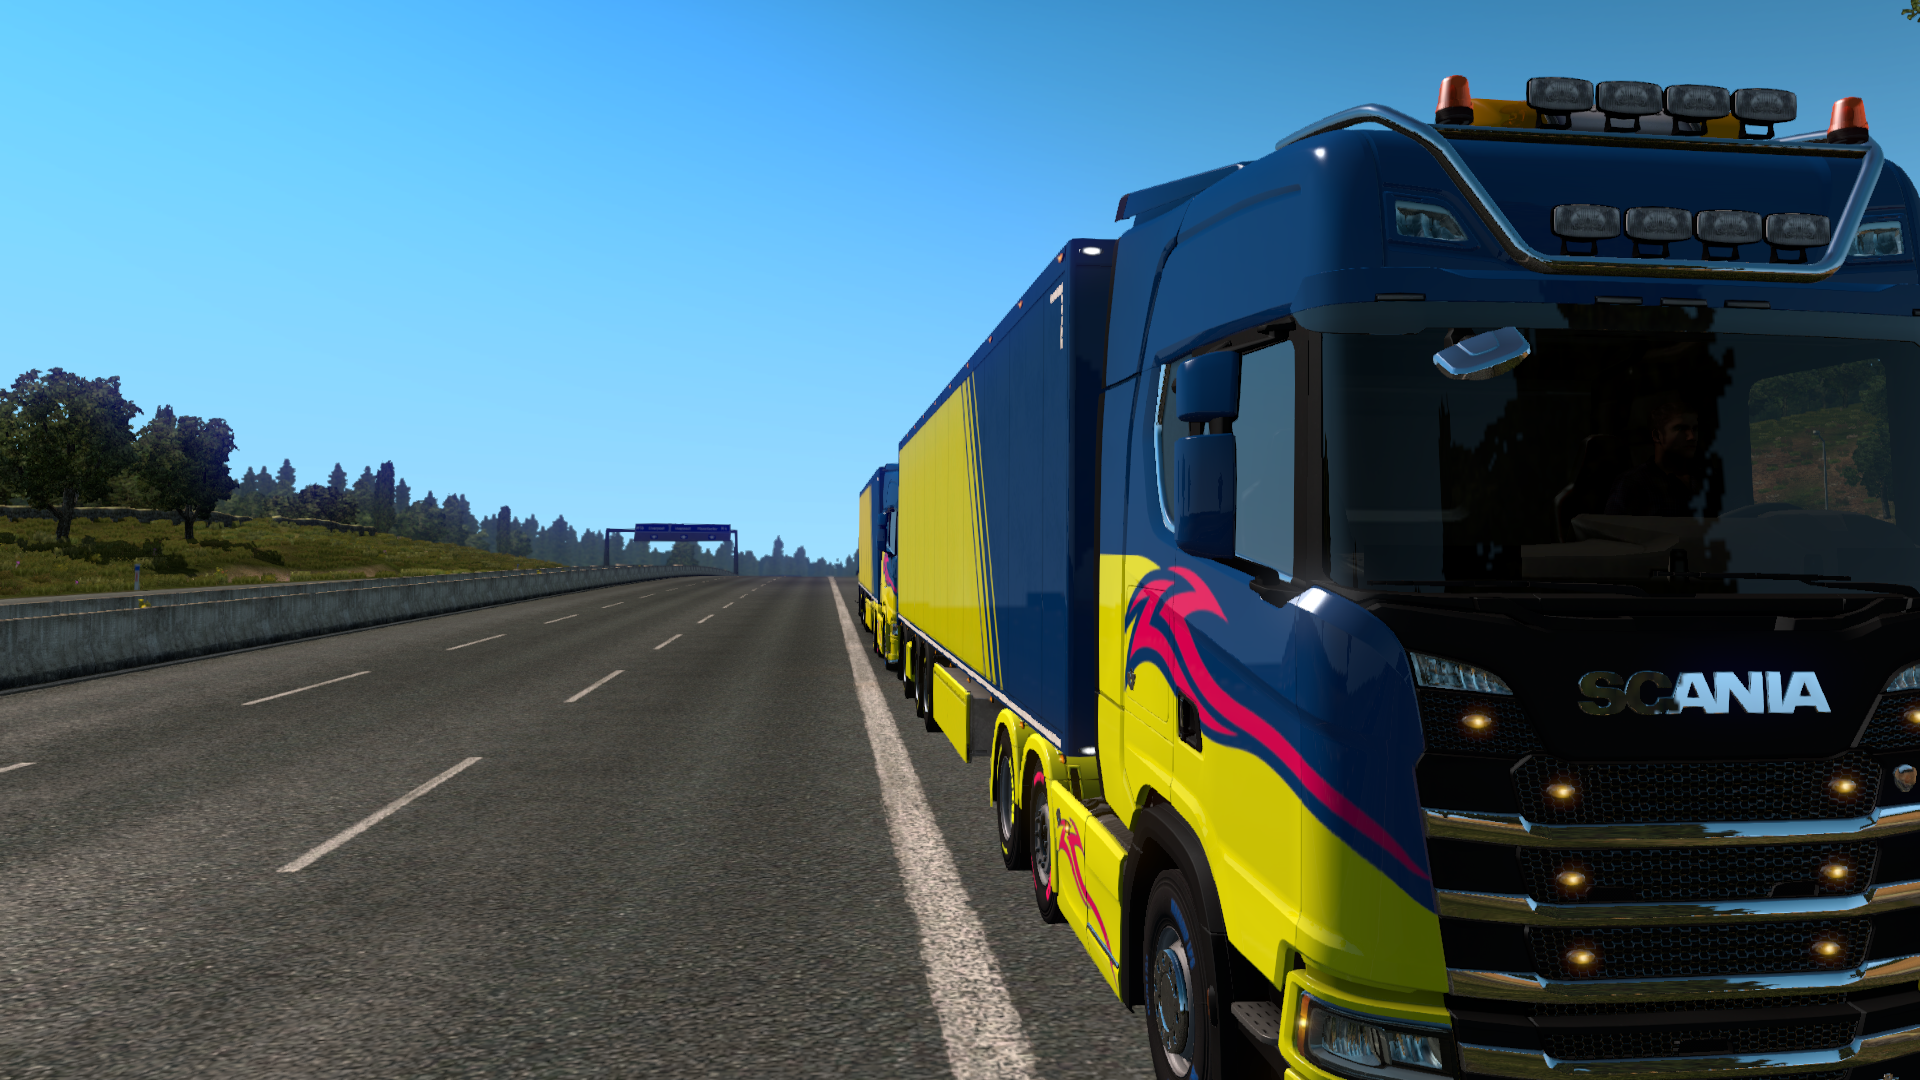 ets2_20180927_191728_00.png